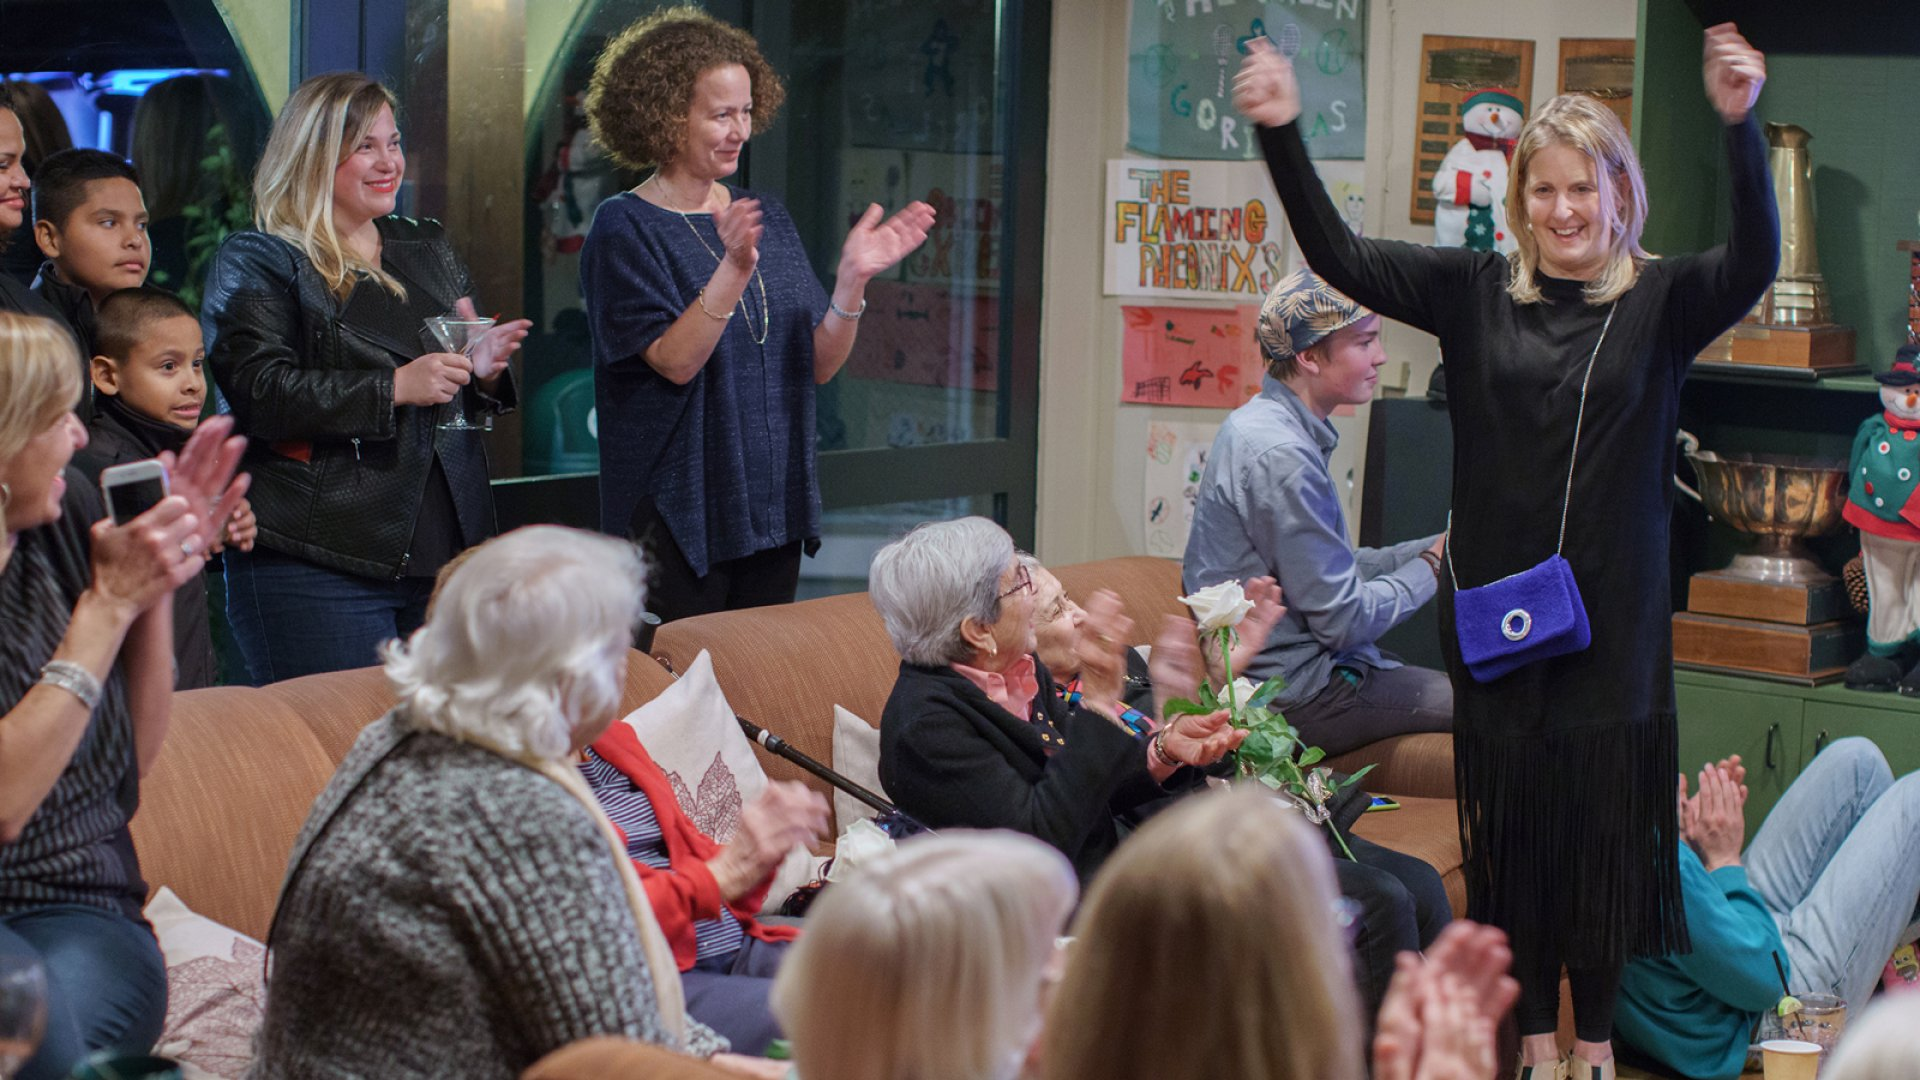 """Sarah Oliver and the """"purlettes"""" celebrate a $250,000 investment in Sarah Oliver Handbags from Shark Tank, during a Dec. 4, 2015 party at the Mill Valley Tennis Club in Mill Valley, Cali."""